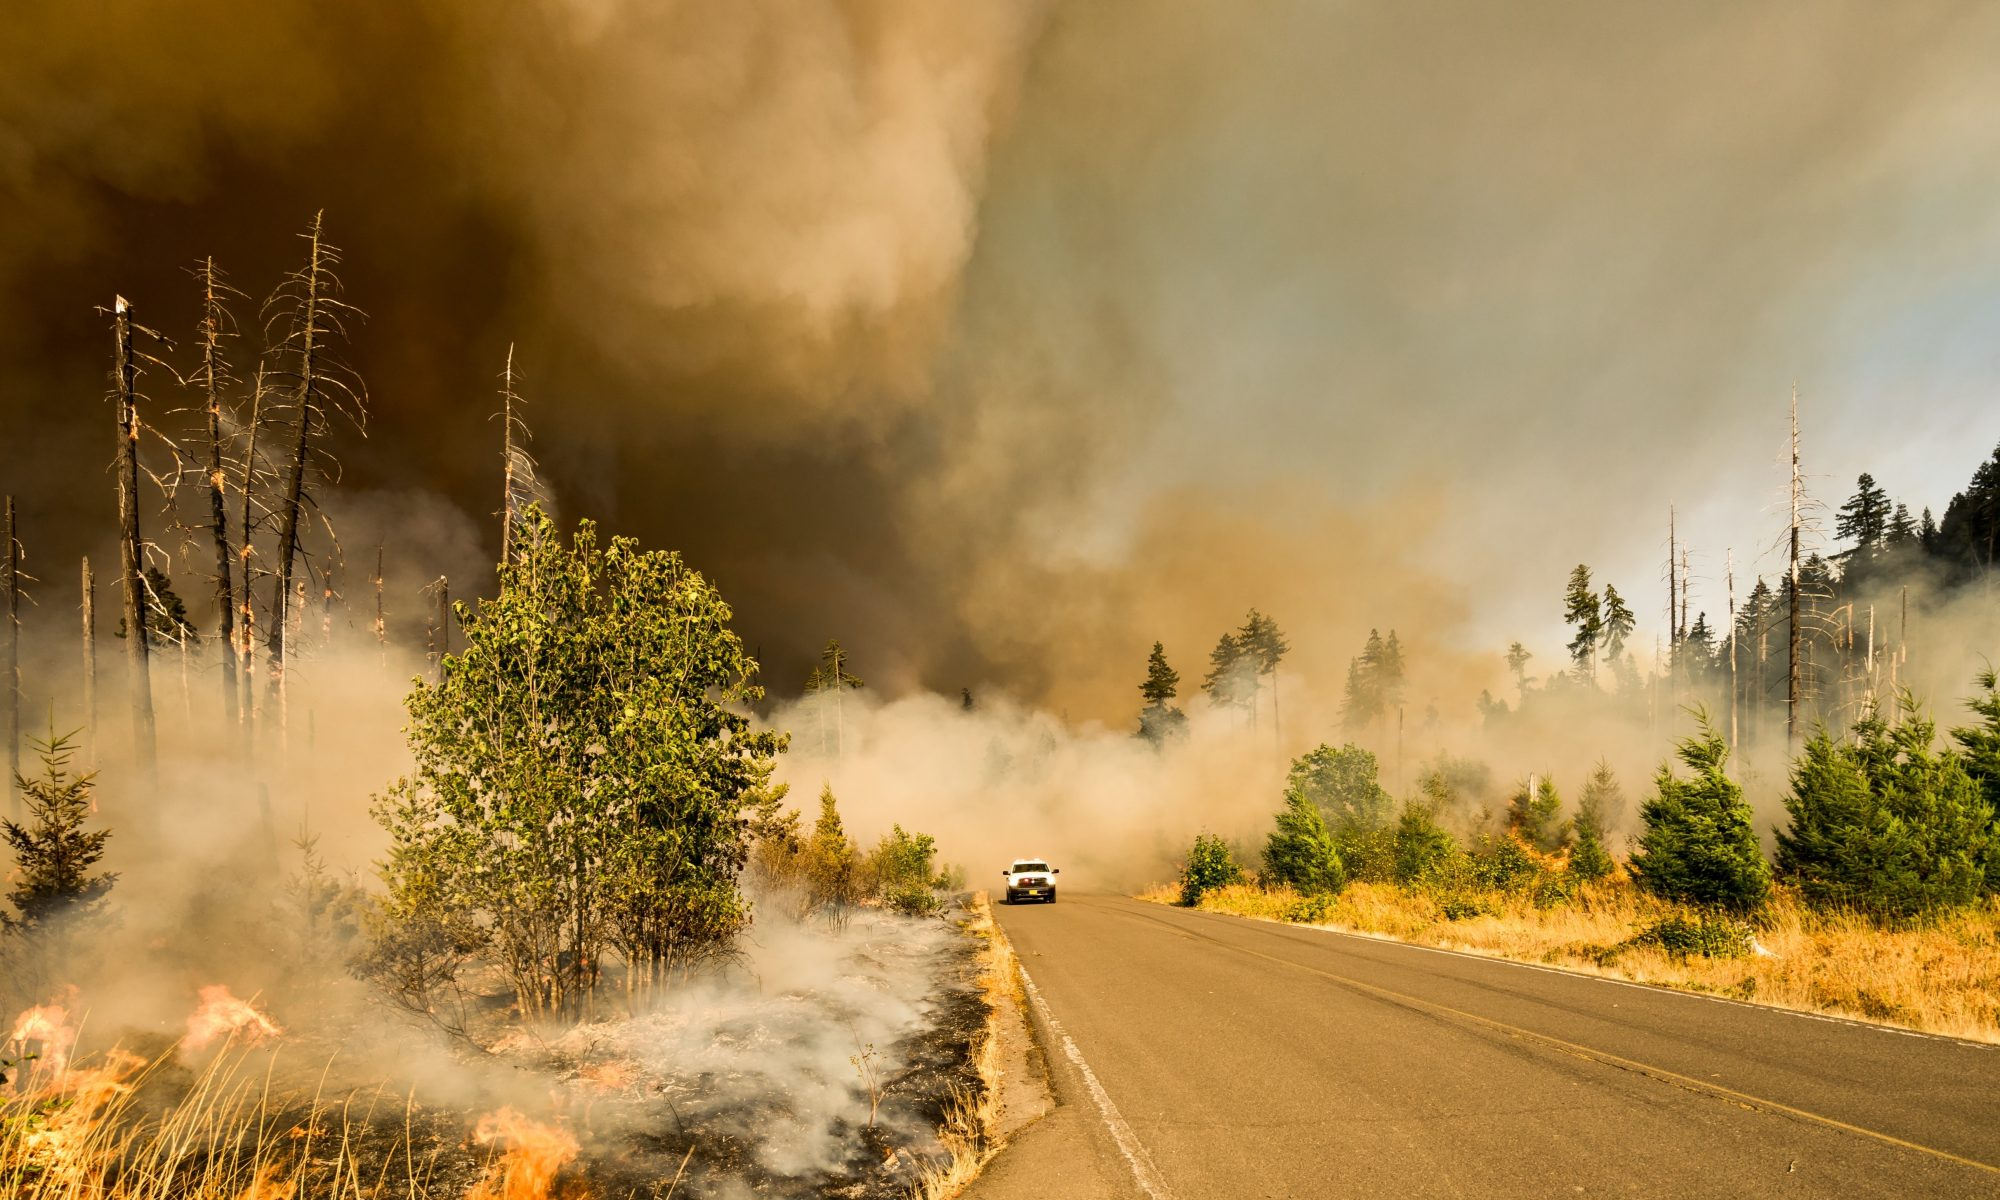 Wildfire smoke billowing over a road